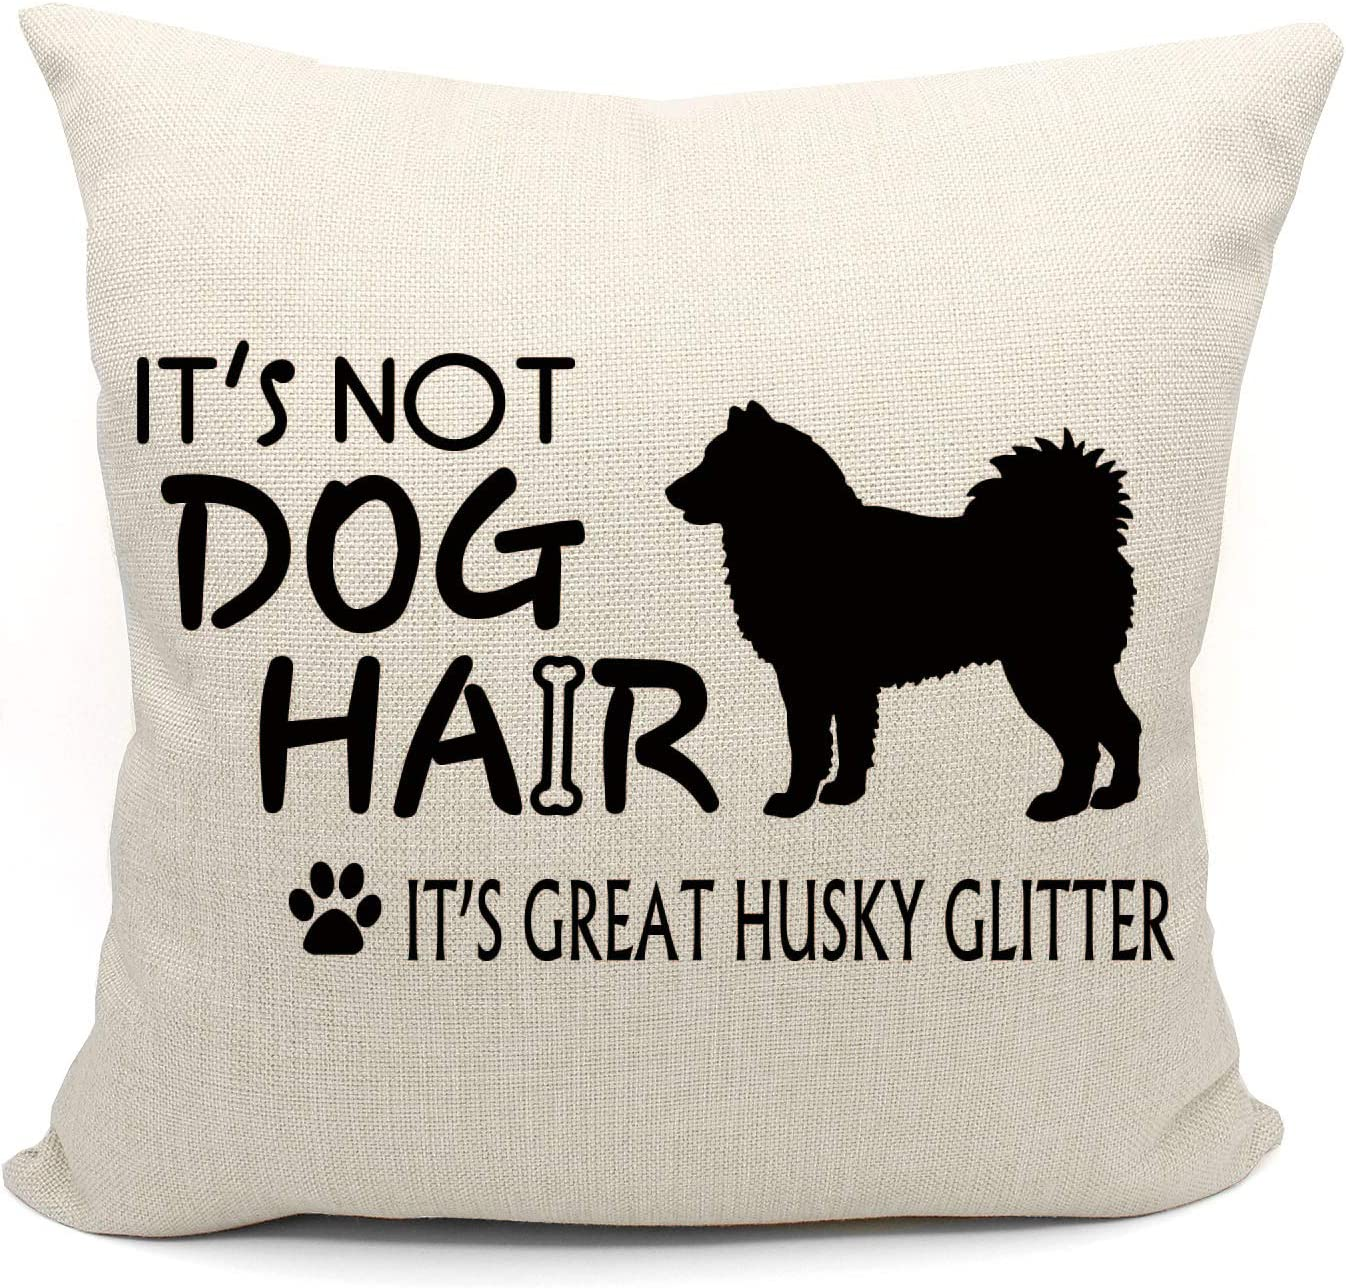 It's Not Dog Hair It's Husky Glitter Throw Pillow Case, Dog Lover Gifts, Husky Decor, Husky Lover Gift, Husky Mom Gift, 18 x 18 Inch Decorative Cotton Linen Cushion Cover for Sofa Couch Bed